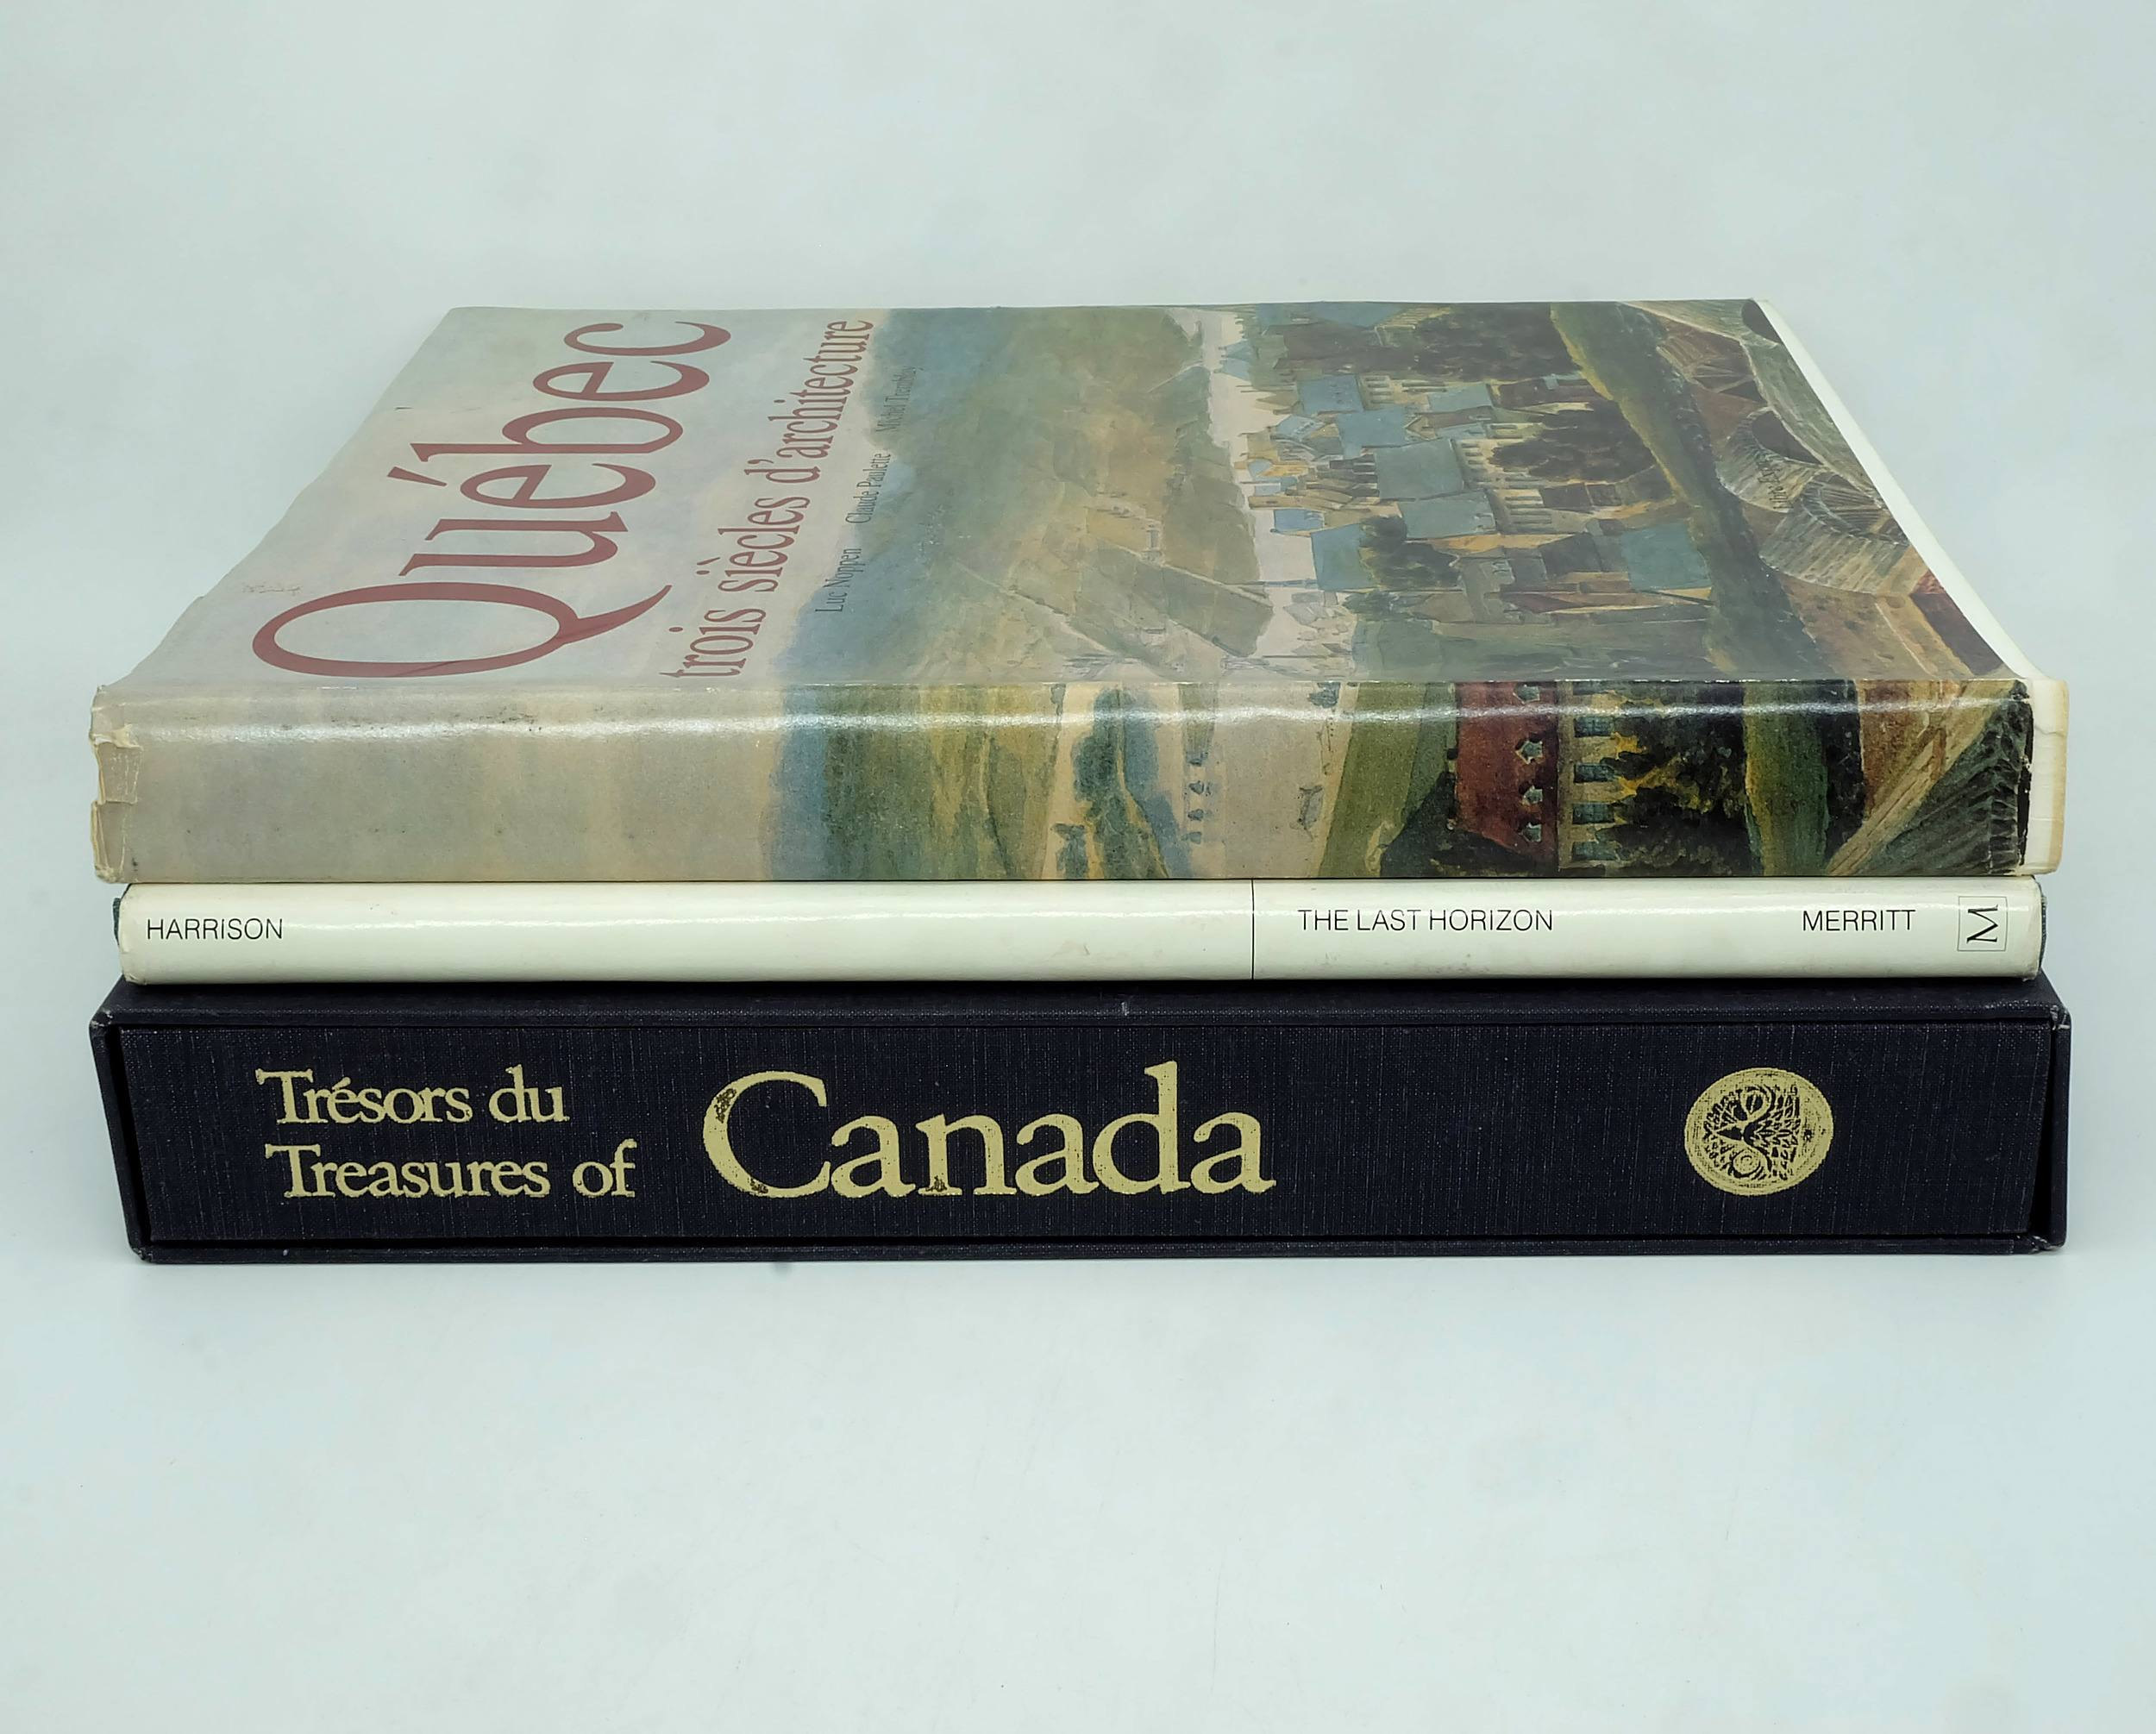 'Three Books Given to Barrie Dexter During his Posting to Canada, Including Treasures of Canada, Quebec and the Last Horizon'